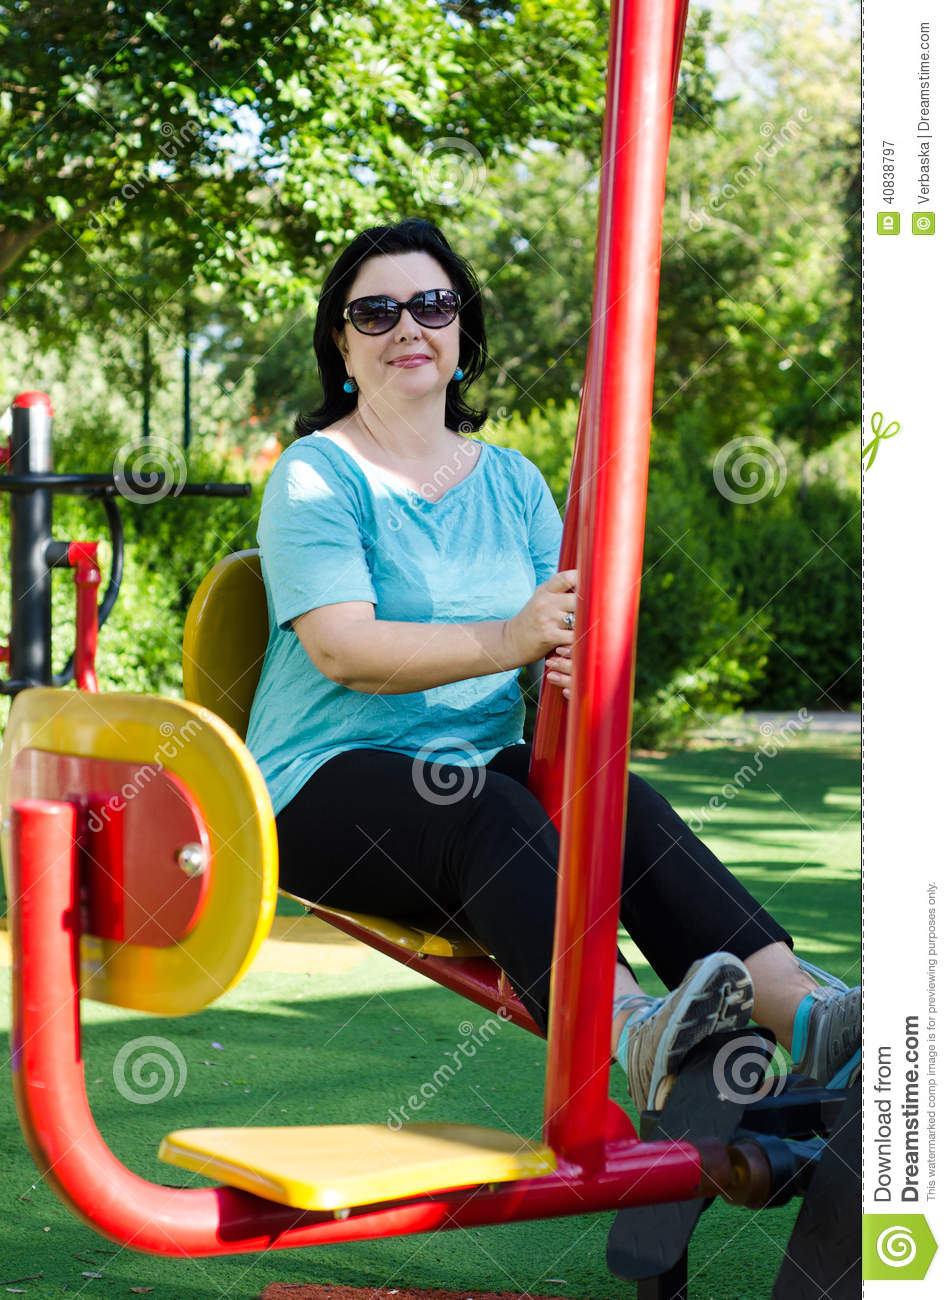 woman training on a leg press station outdoor stock image - image of